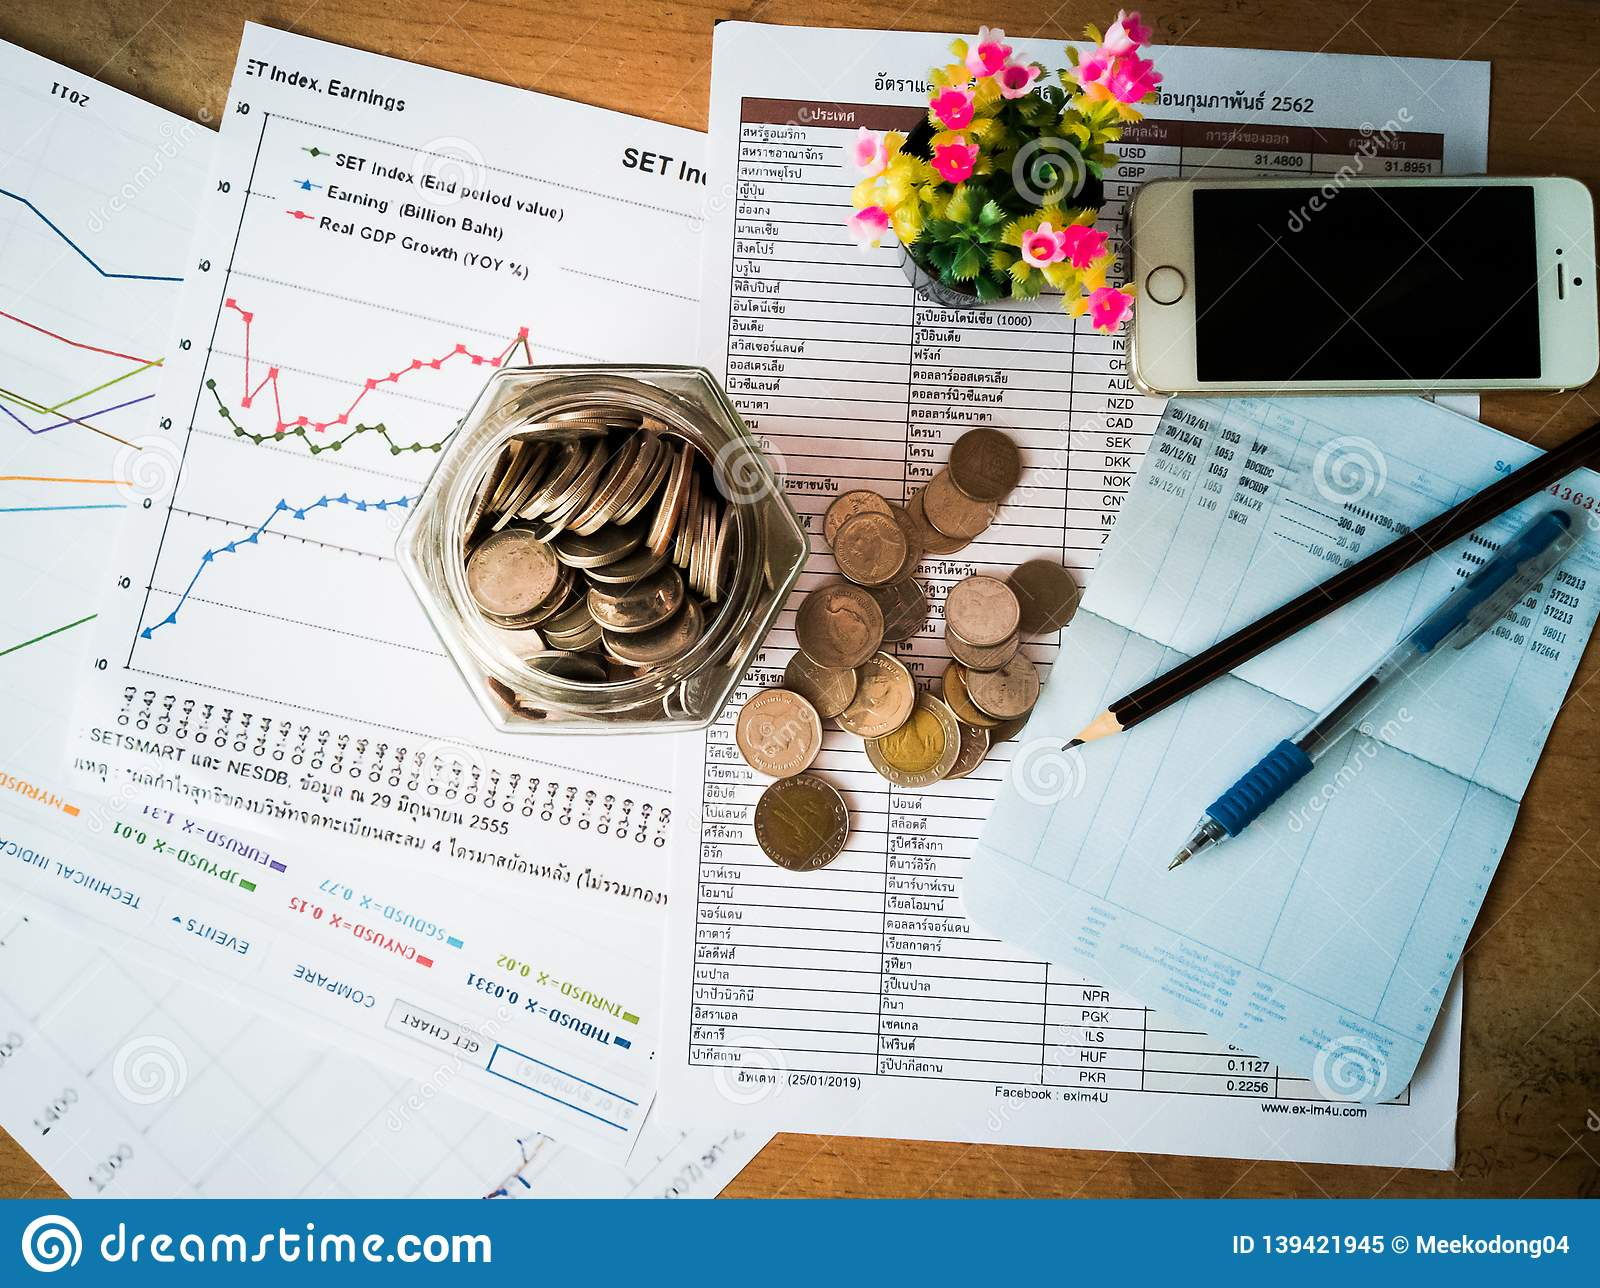 Financial growth and investor planning concepts